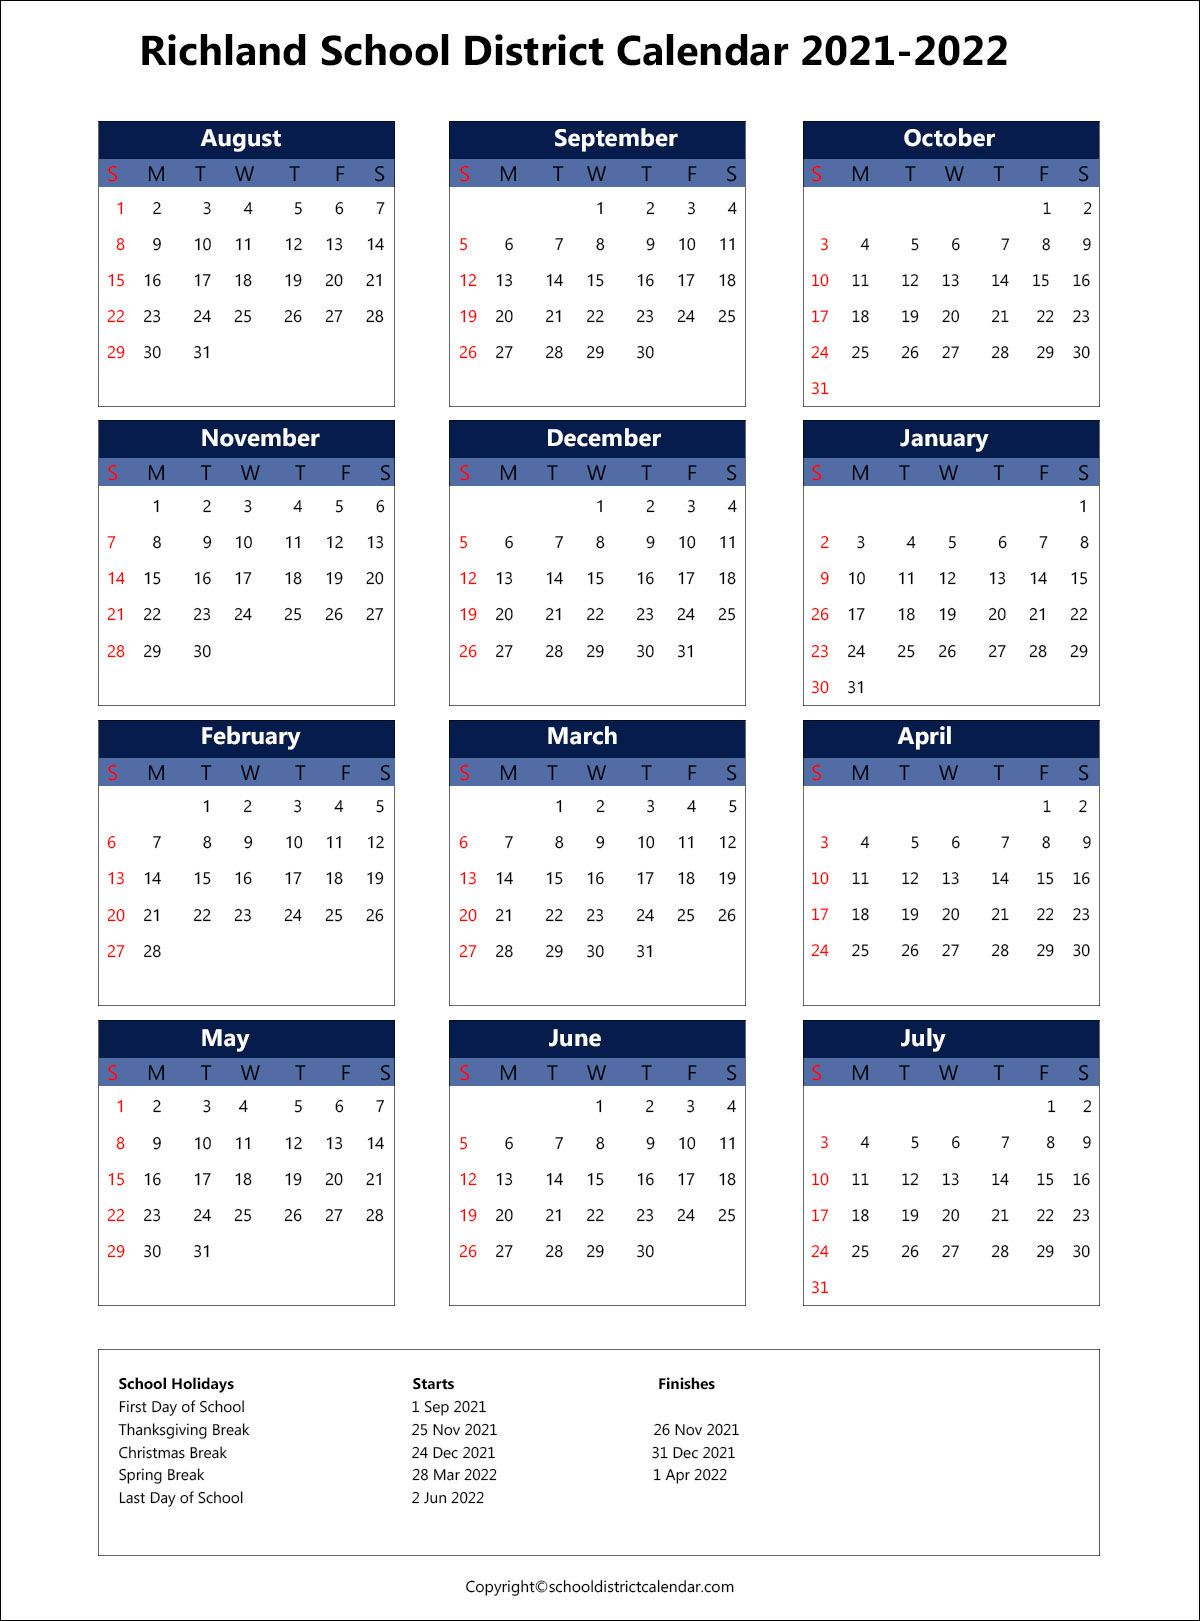 Richland School District Calendar 2021